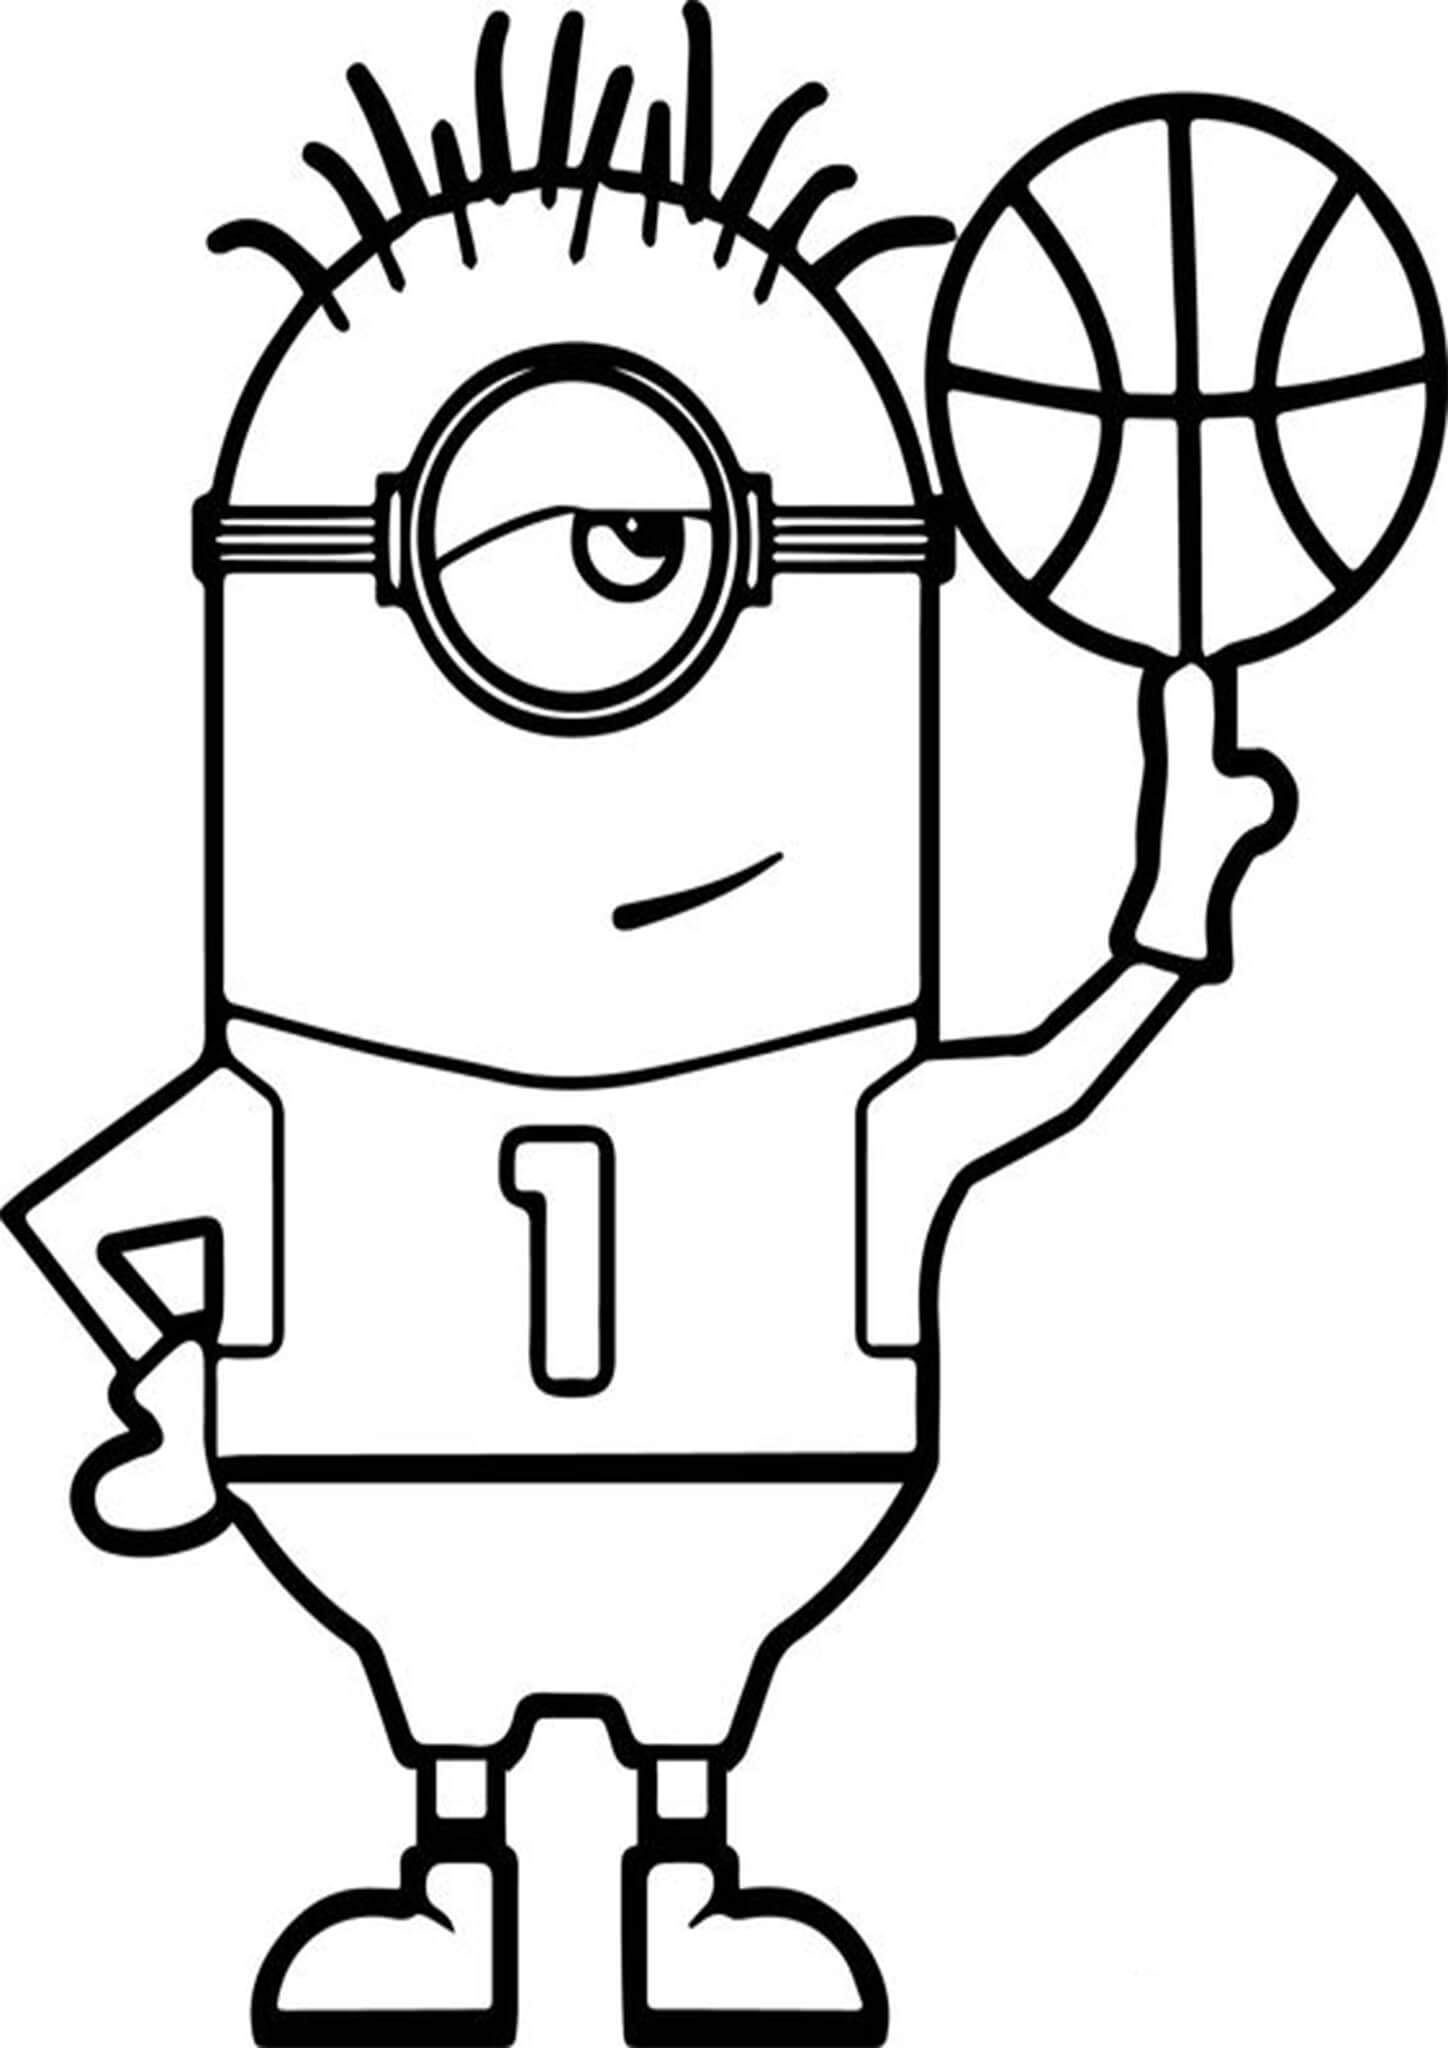 Free Easy To Print Basketball Coloring Pages Minion Coloring Pages Sports Coloring Pages Coloring Pages For Kids